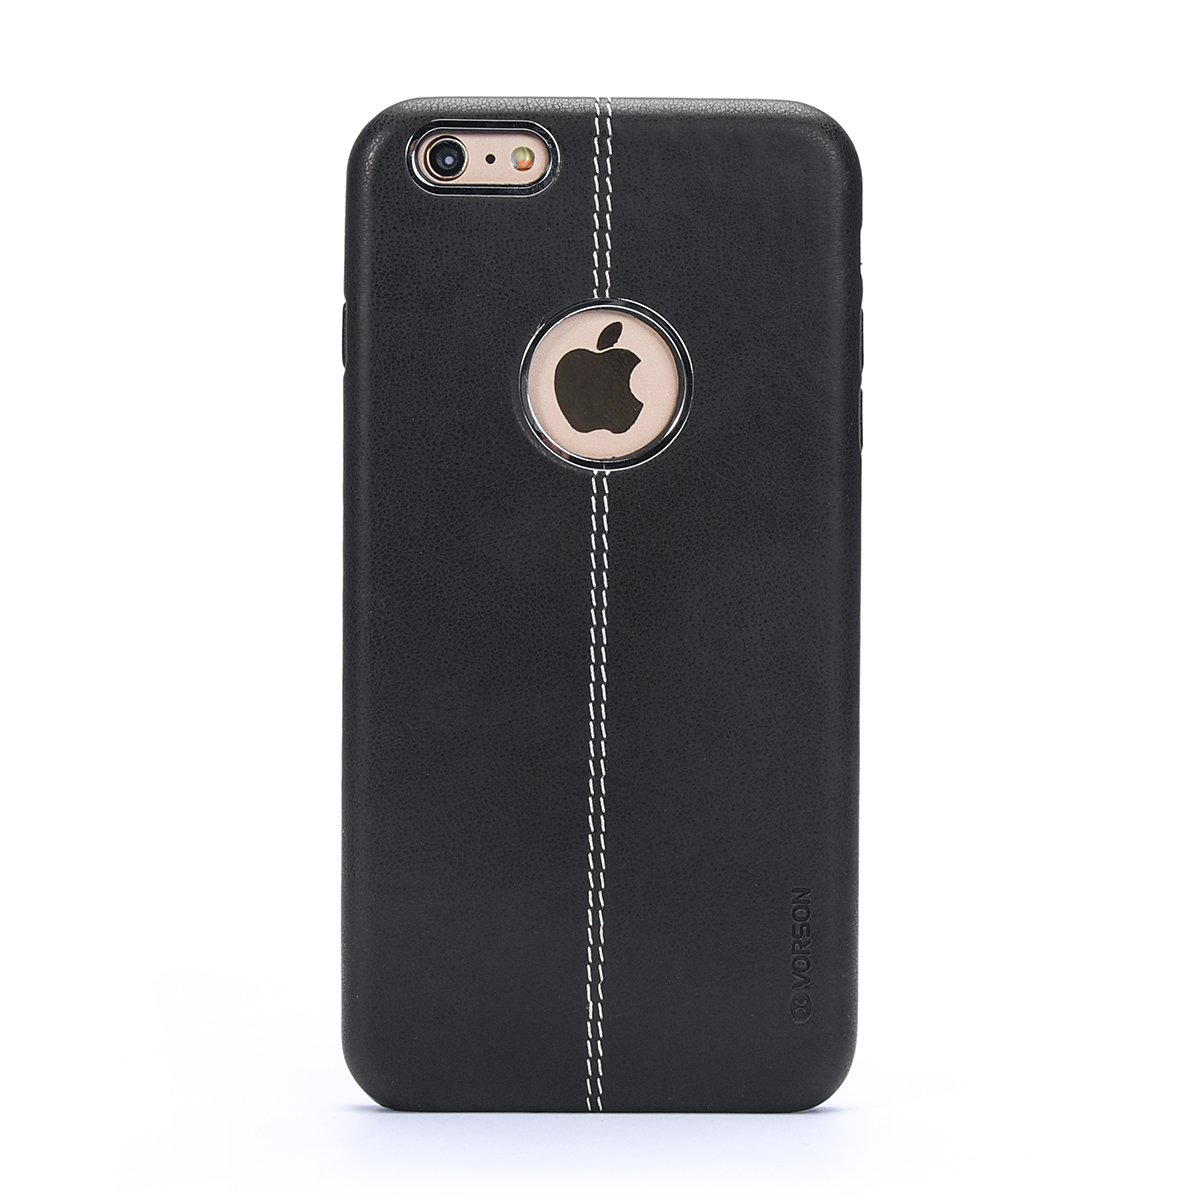 6s Case,iPhone 6 Case Slim Fit,High-grade Leather Soft Simple Cover Case for Apple iPhone 6 / 6S -Black